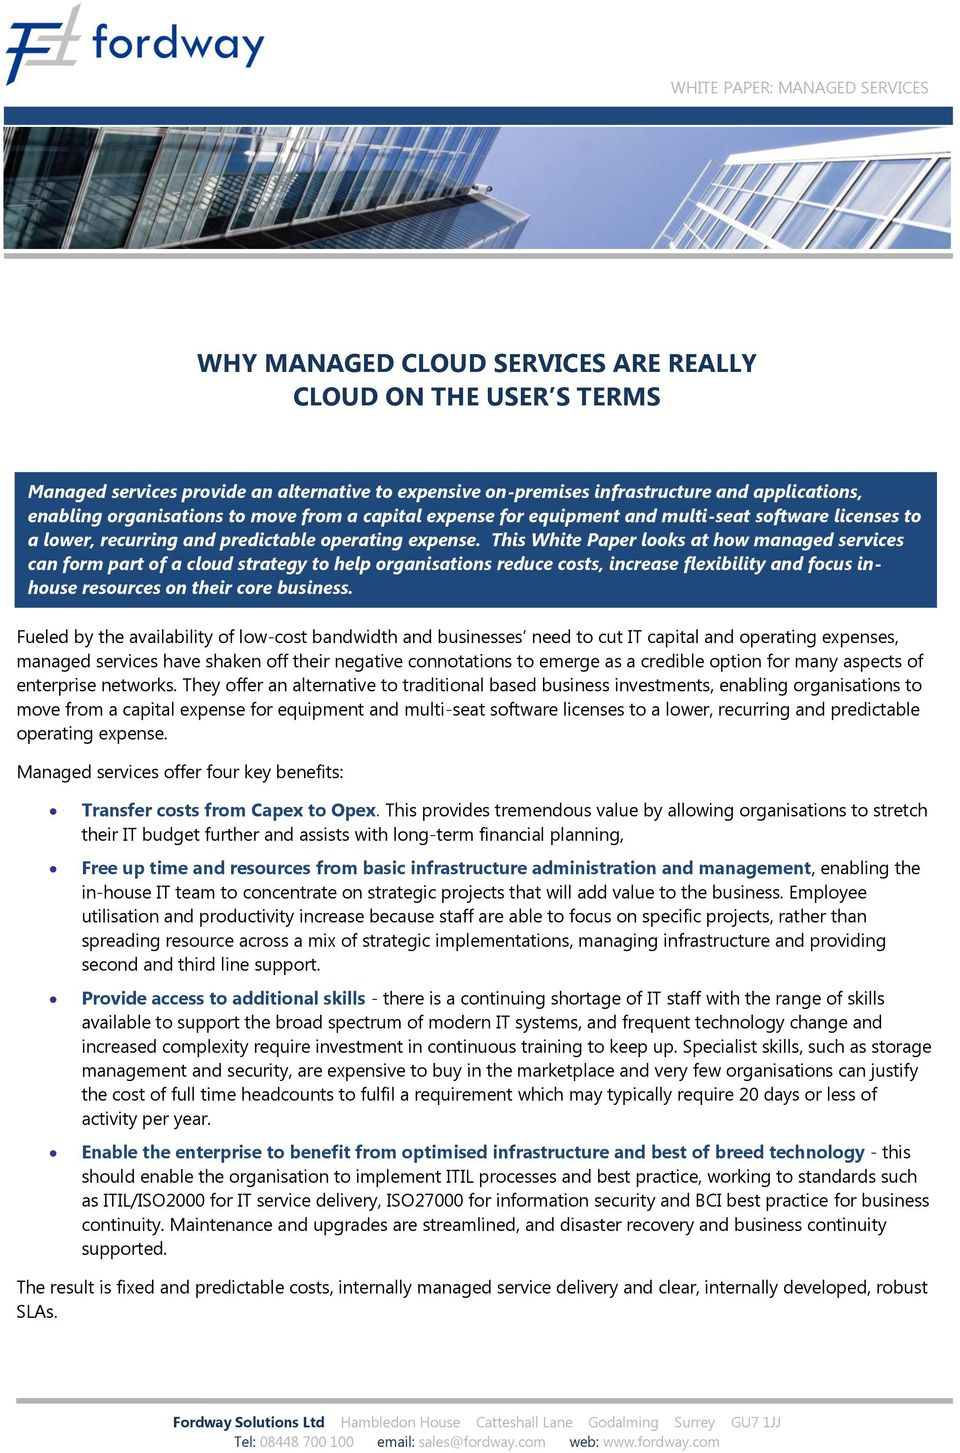 This White Paper looks at how managed services can form part of a cloud strategy to help organisations reduce costs, increase flexibility and focus inhouse resources on their core business.